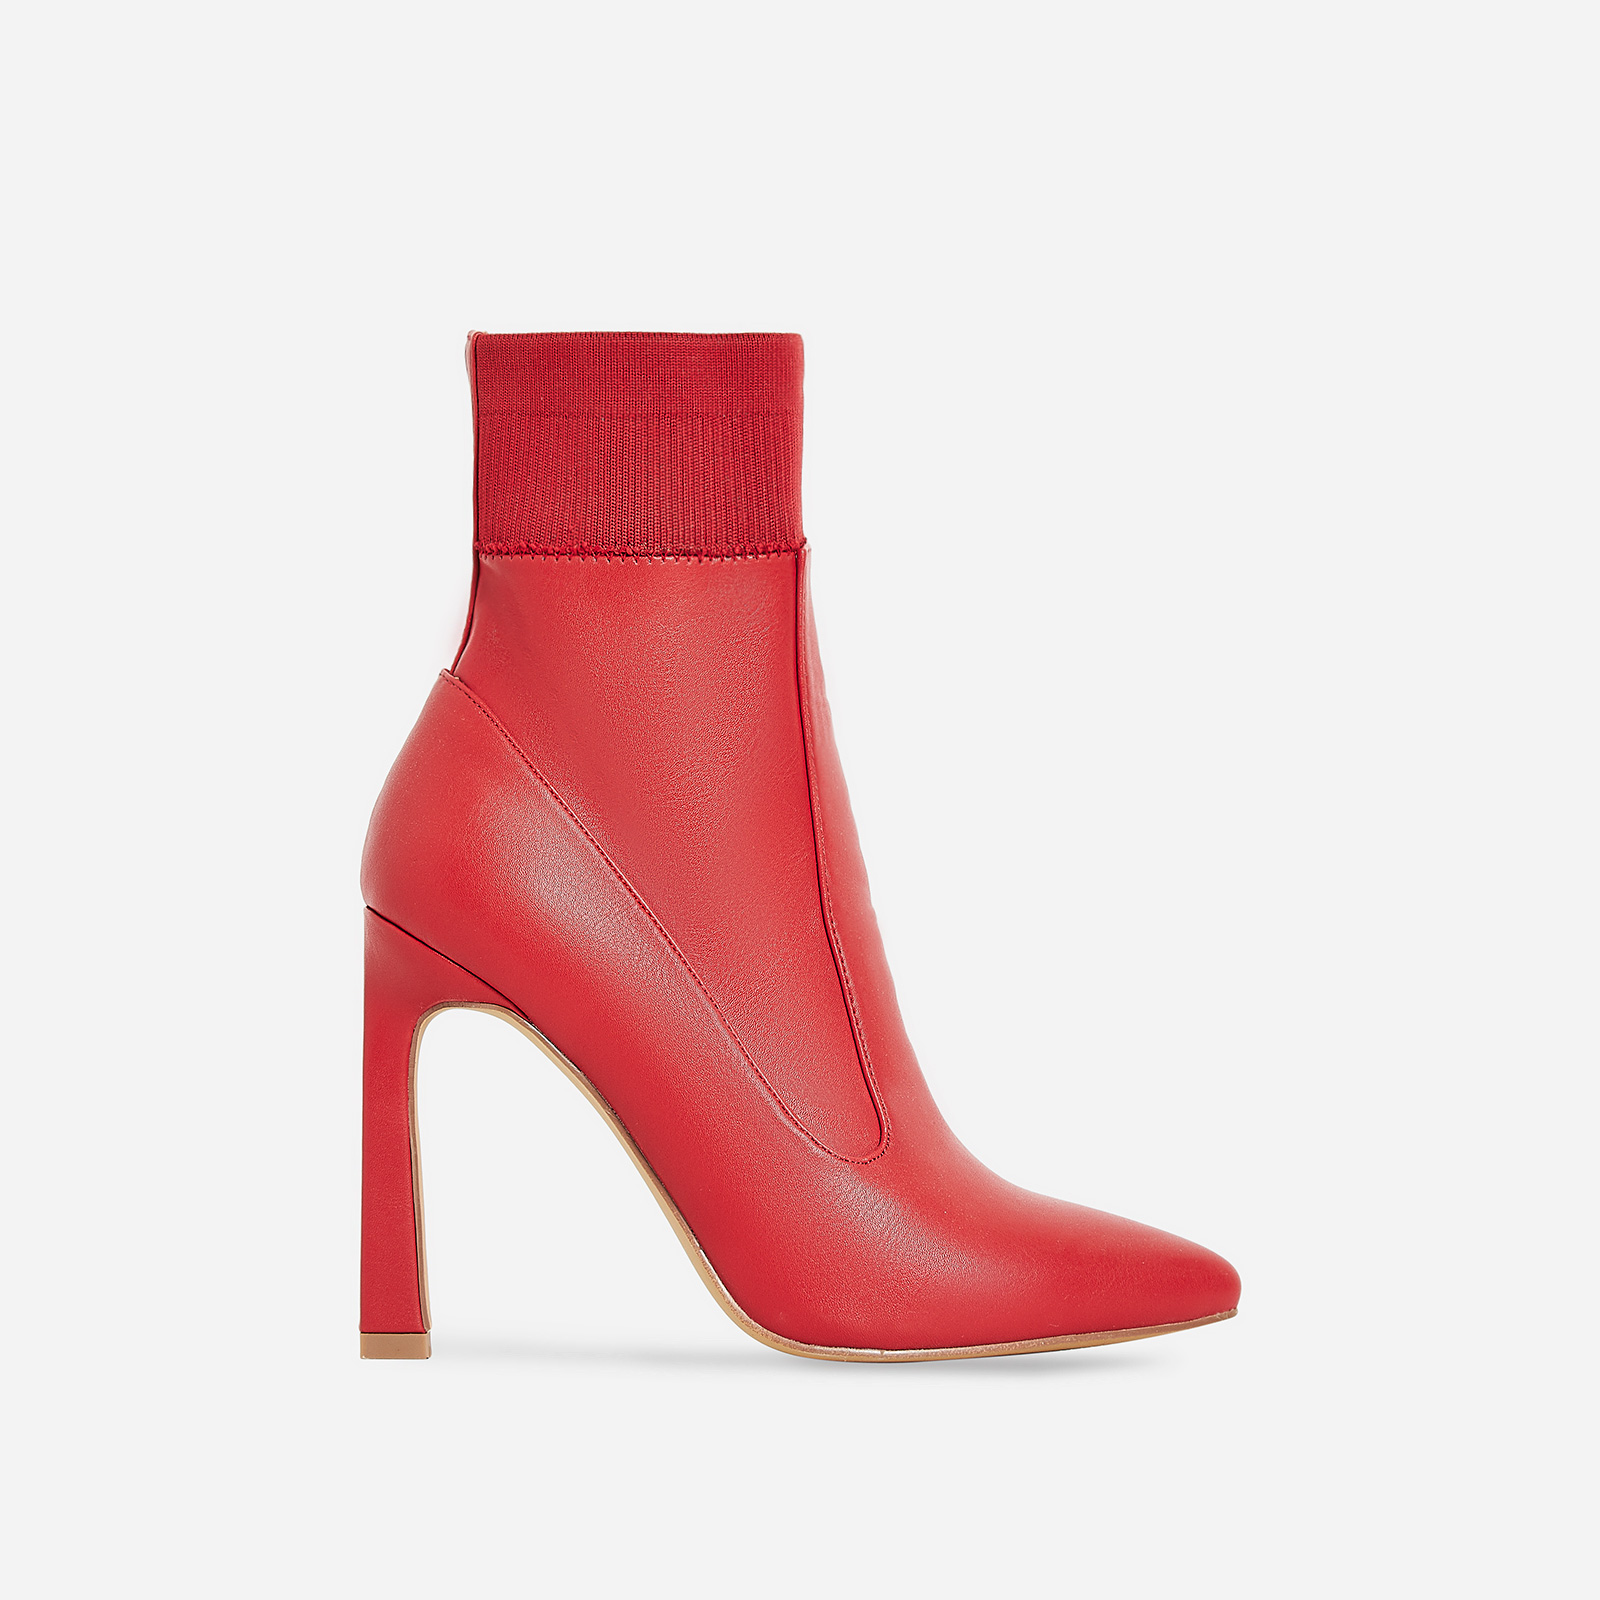 Elaina Flared Stiletto Heel Ankle Sock Boot In Red Faux Leather